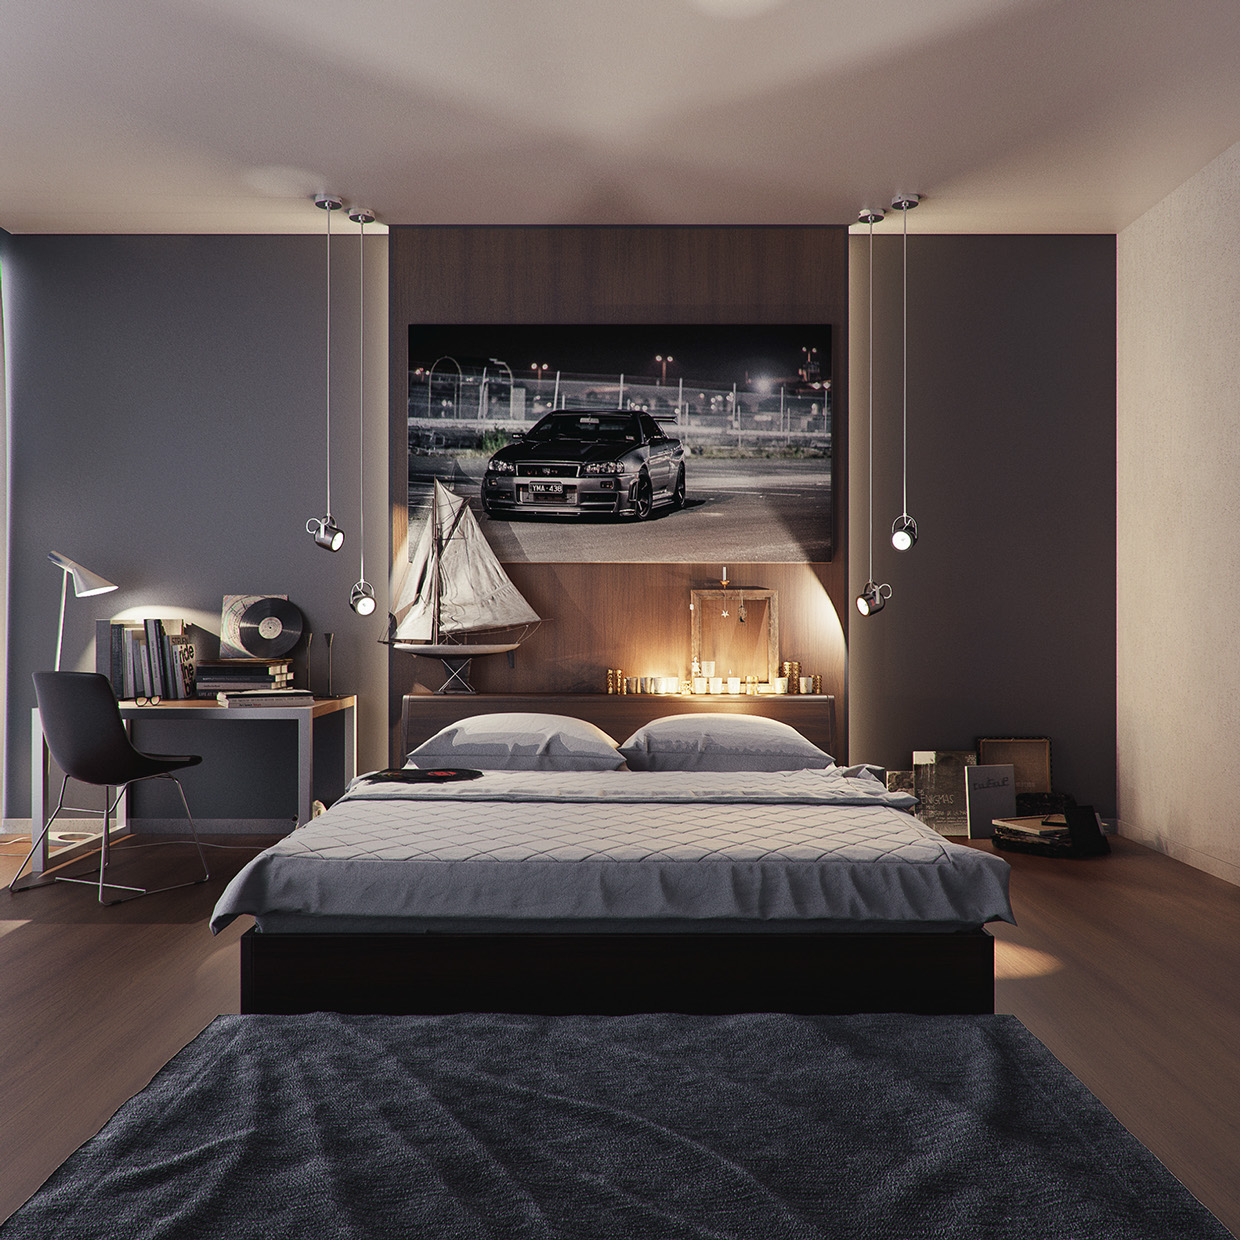 black bedroom ideas inspiration for master bedroom designs - Masculine Bedroom Design